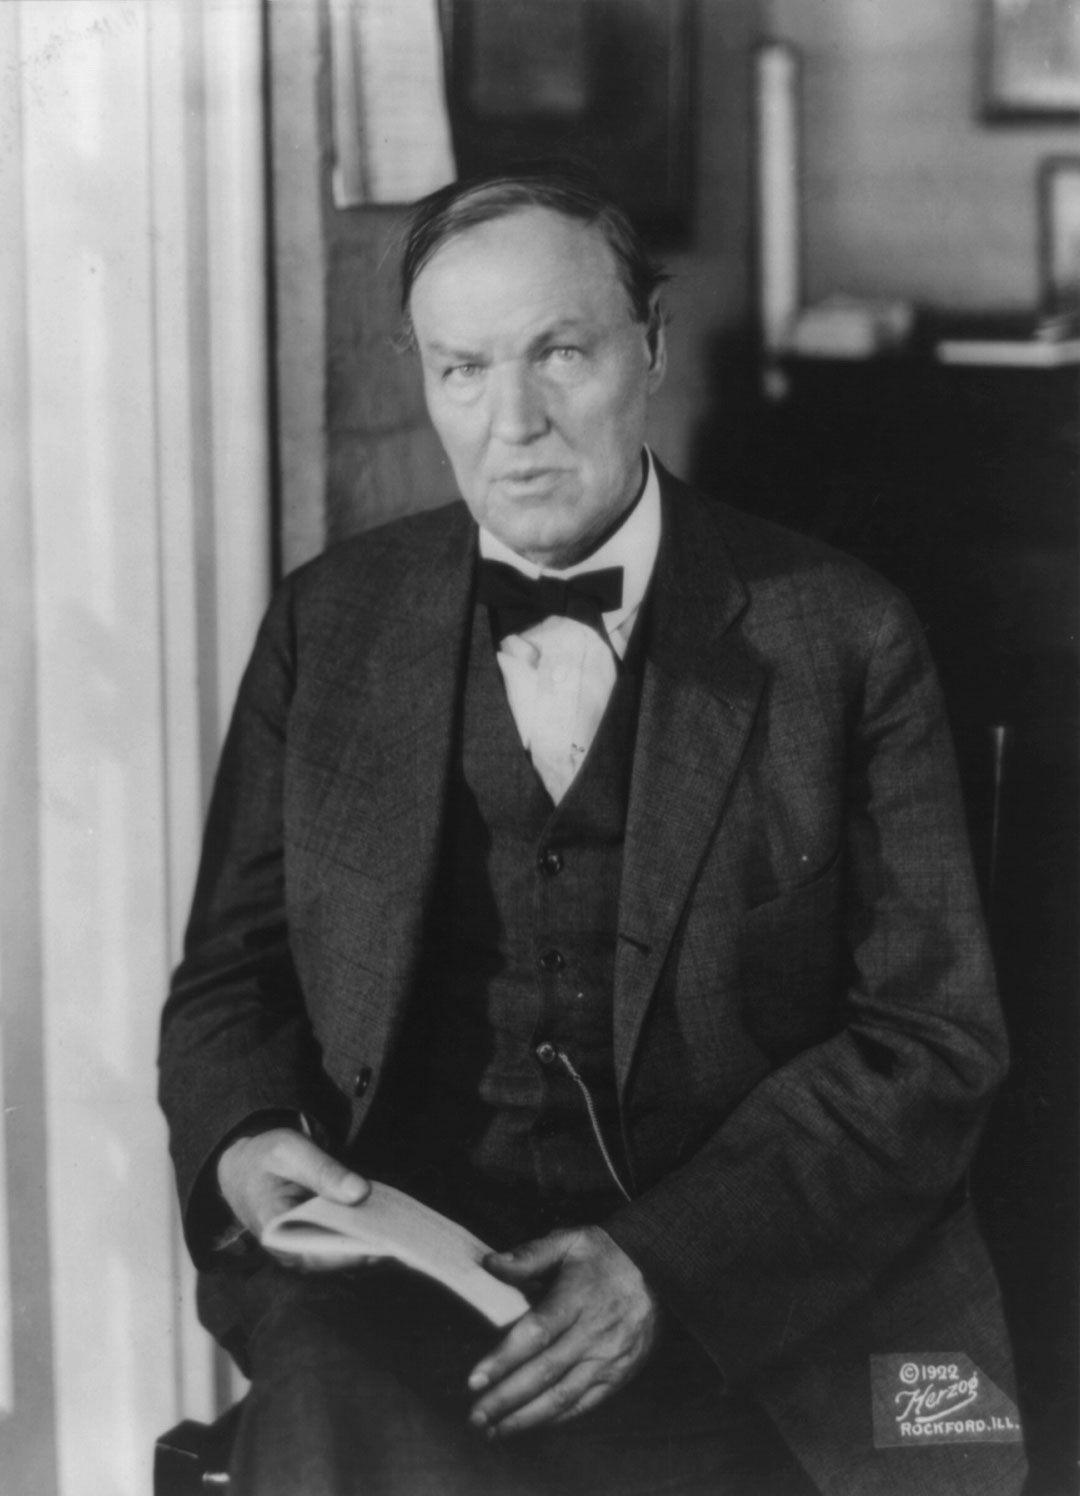 leopold and loeb essay The purpose of this study was to examine the courtroom summation of clarence darrow in the leopold-loeb murder trial by the application of the burkeian concepts of strategy and pentad.